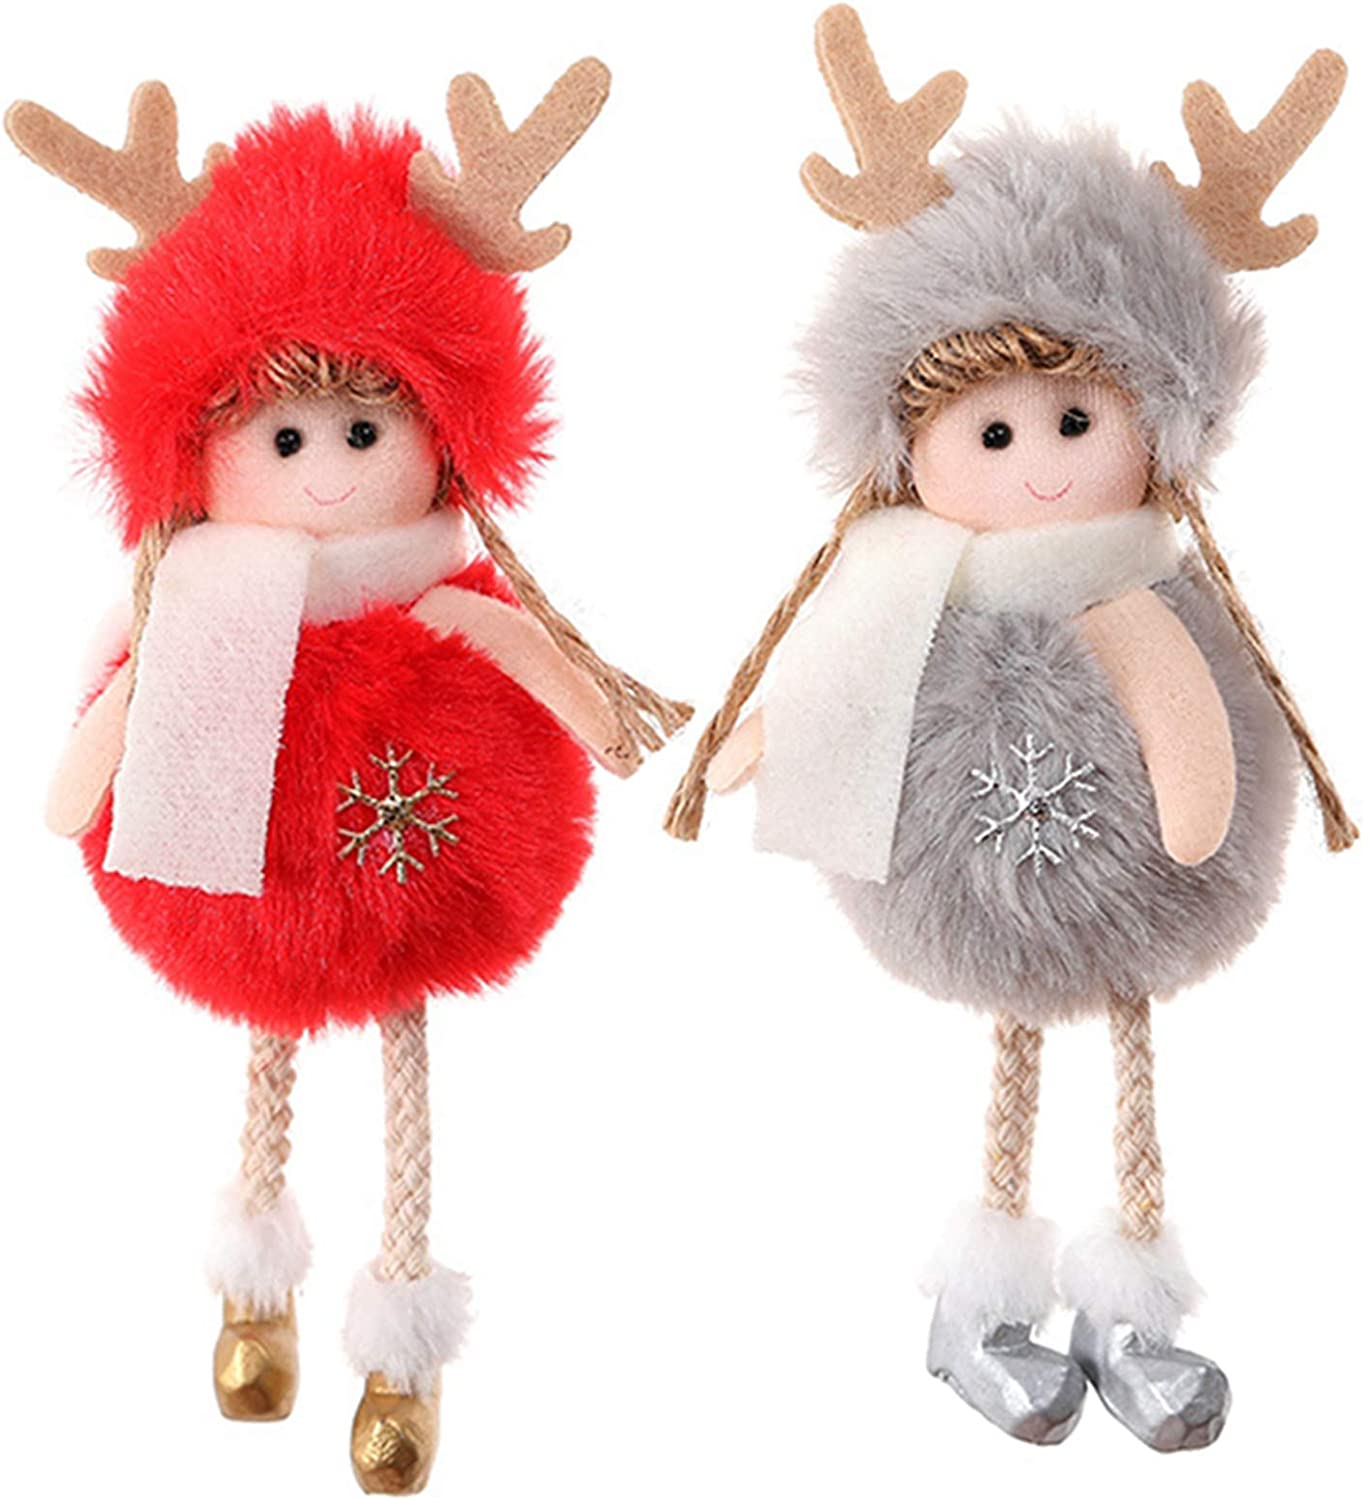 PGYFIS Christmas Decoration 2 Pieces Elk Angel Doll Pendant Tree Hanging Ornaments Christmas Crafts Elves Decorations Red and Gray (Angel-Elk-R&G)